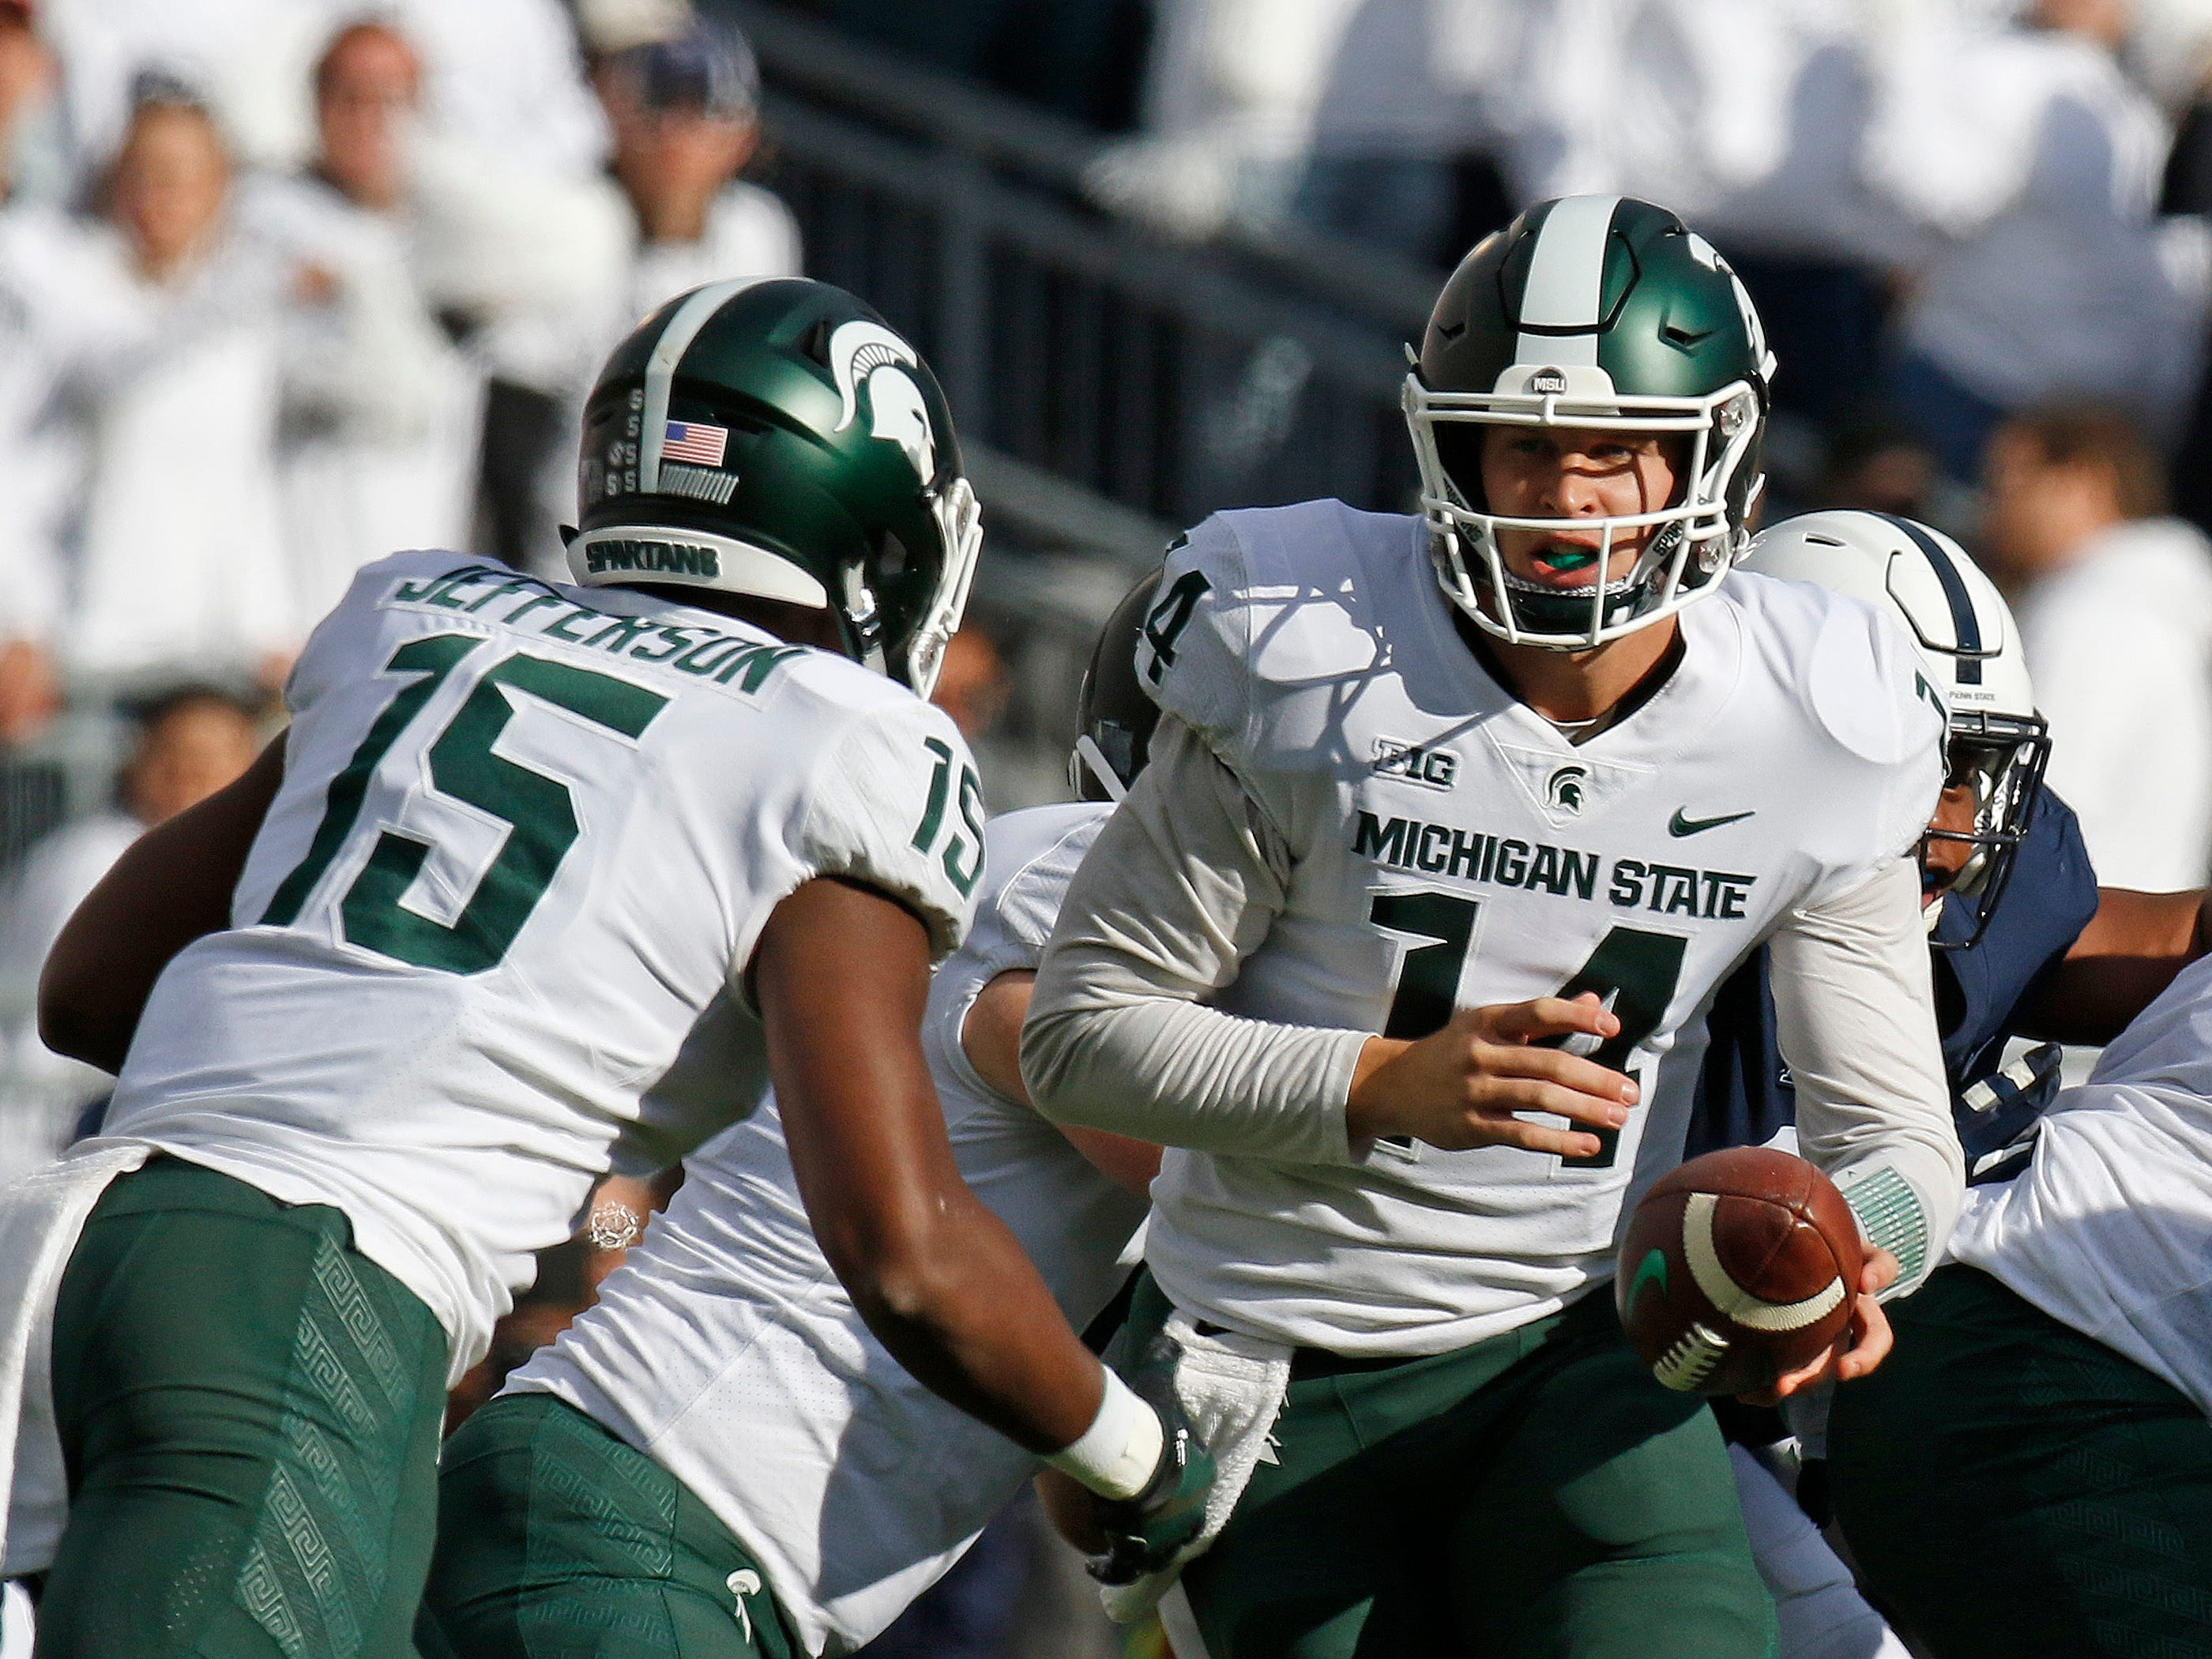 Brian Lewerke #14 of the Michigan State Spartans hands off to La'Darius Jefferson #15 of the Michigan State Spartans against the Penn State Nittany Lions on October 13, 2018 at Beaver Stadium in State College, Pennsylvania.